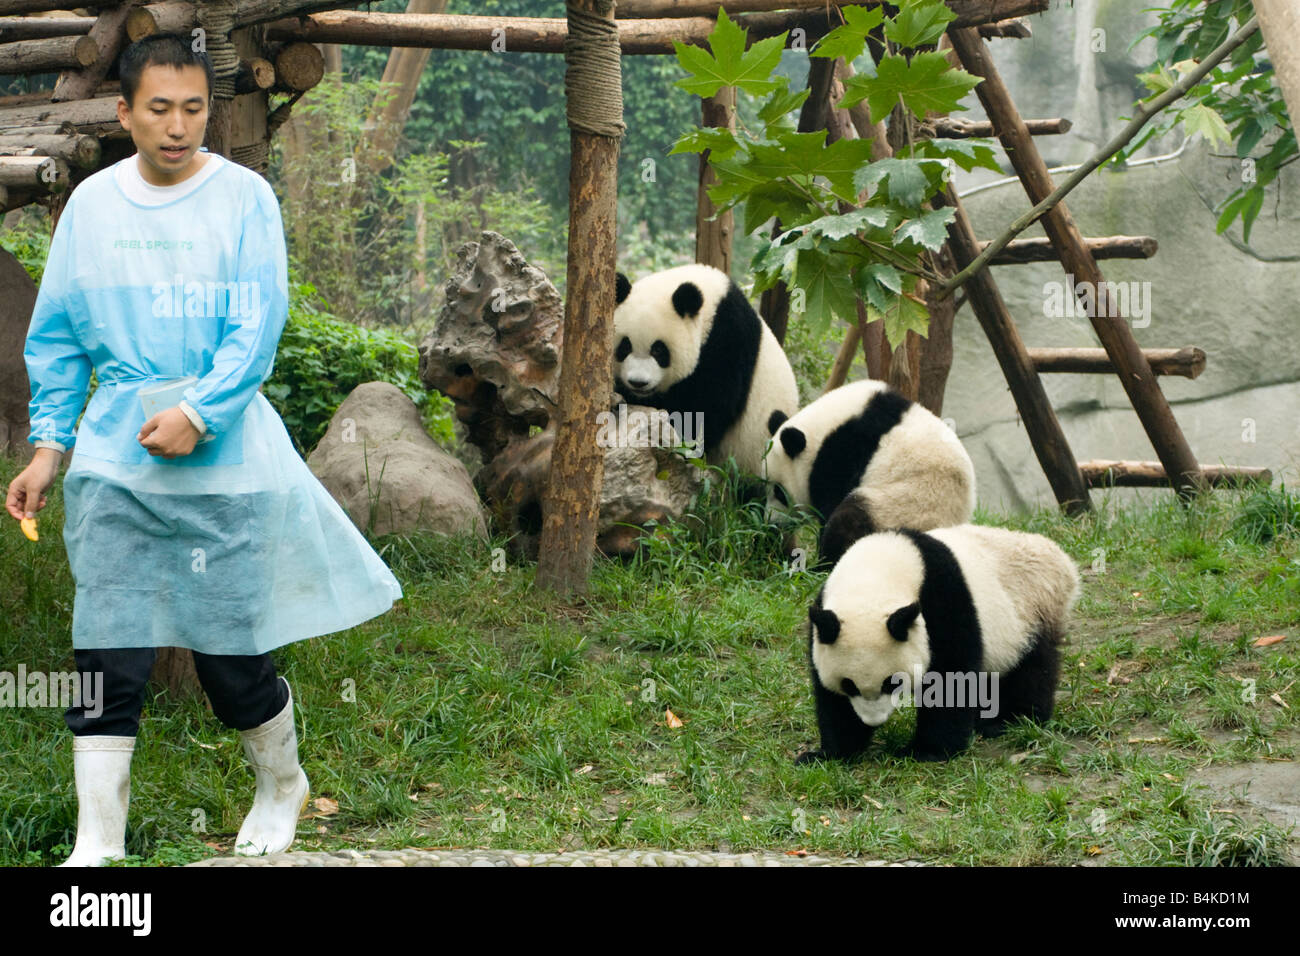 A group of young giant pandas (Ailuropoda melanoleuca ) at the Panda Breeding and Research Center Chengdu China - Stock Image